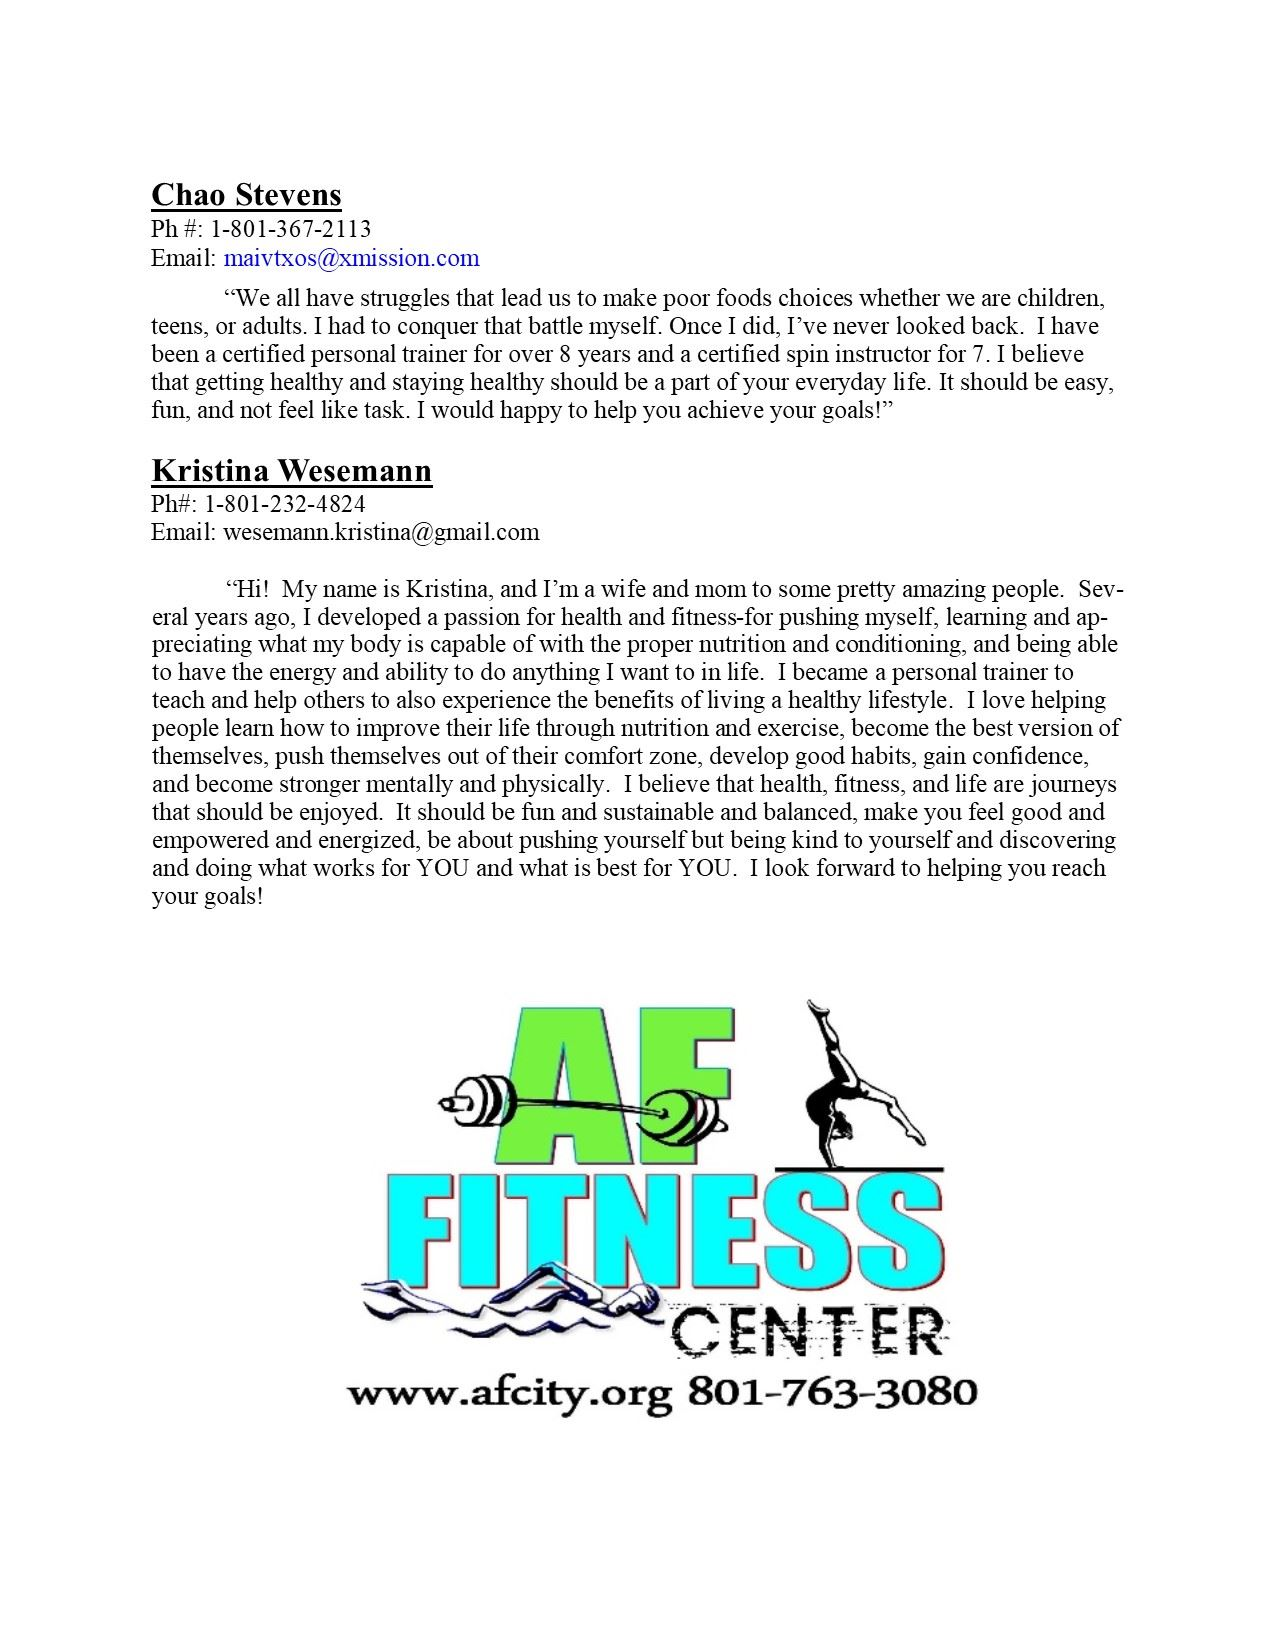 Personal Trainers Biography 3